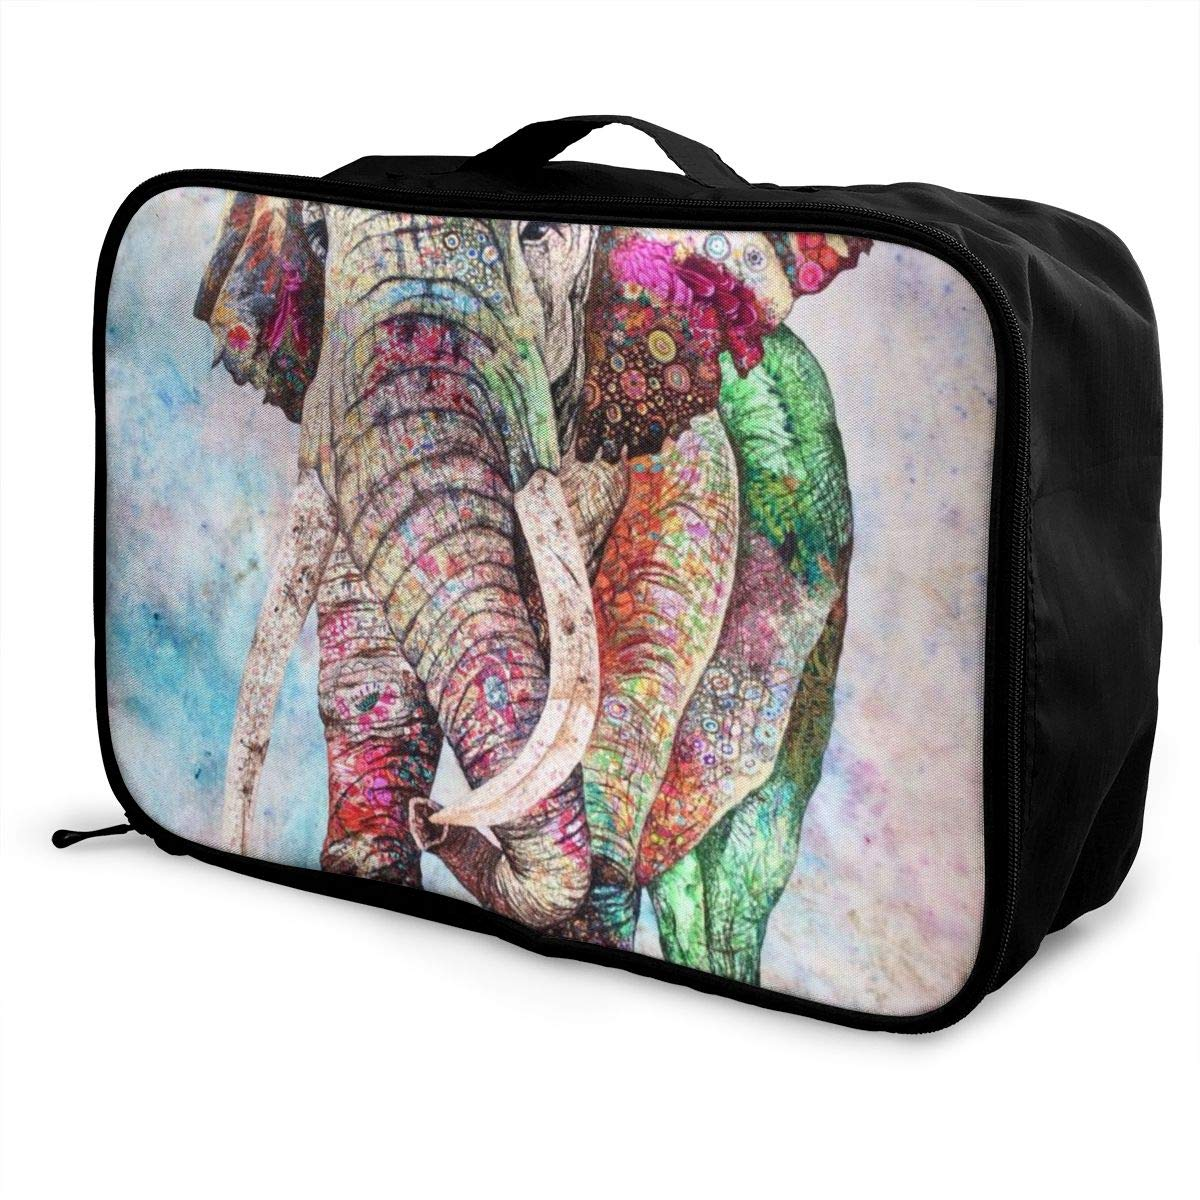 Colorful Floral Elephant Travel Lightweight Waterproof Folding Storage Portable Luggage Duffle Tote Bag Large Capacity In Trolley Handle Bags 6x11x15 Inch